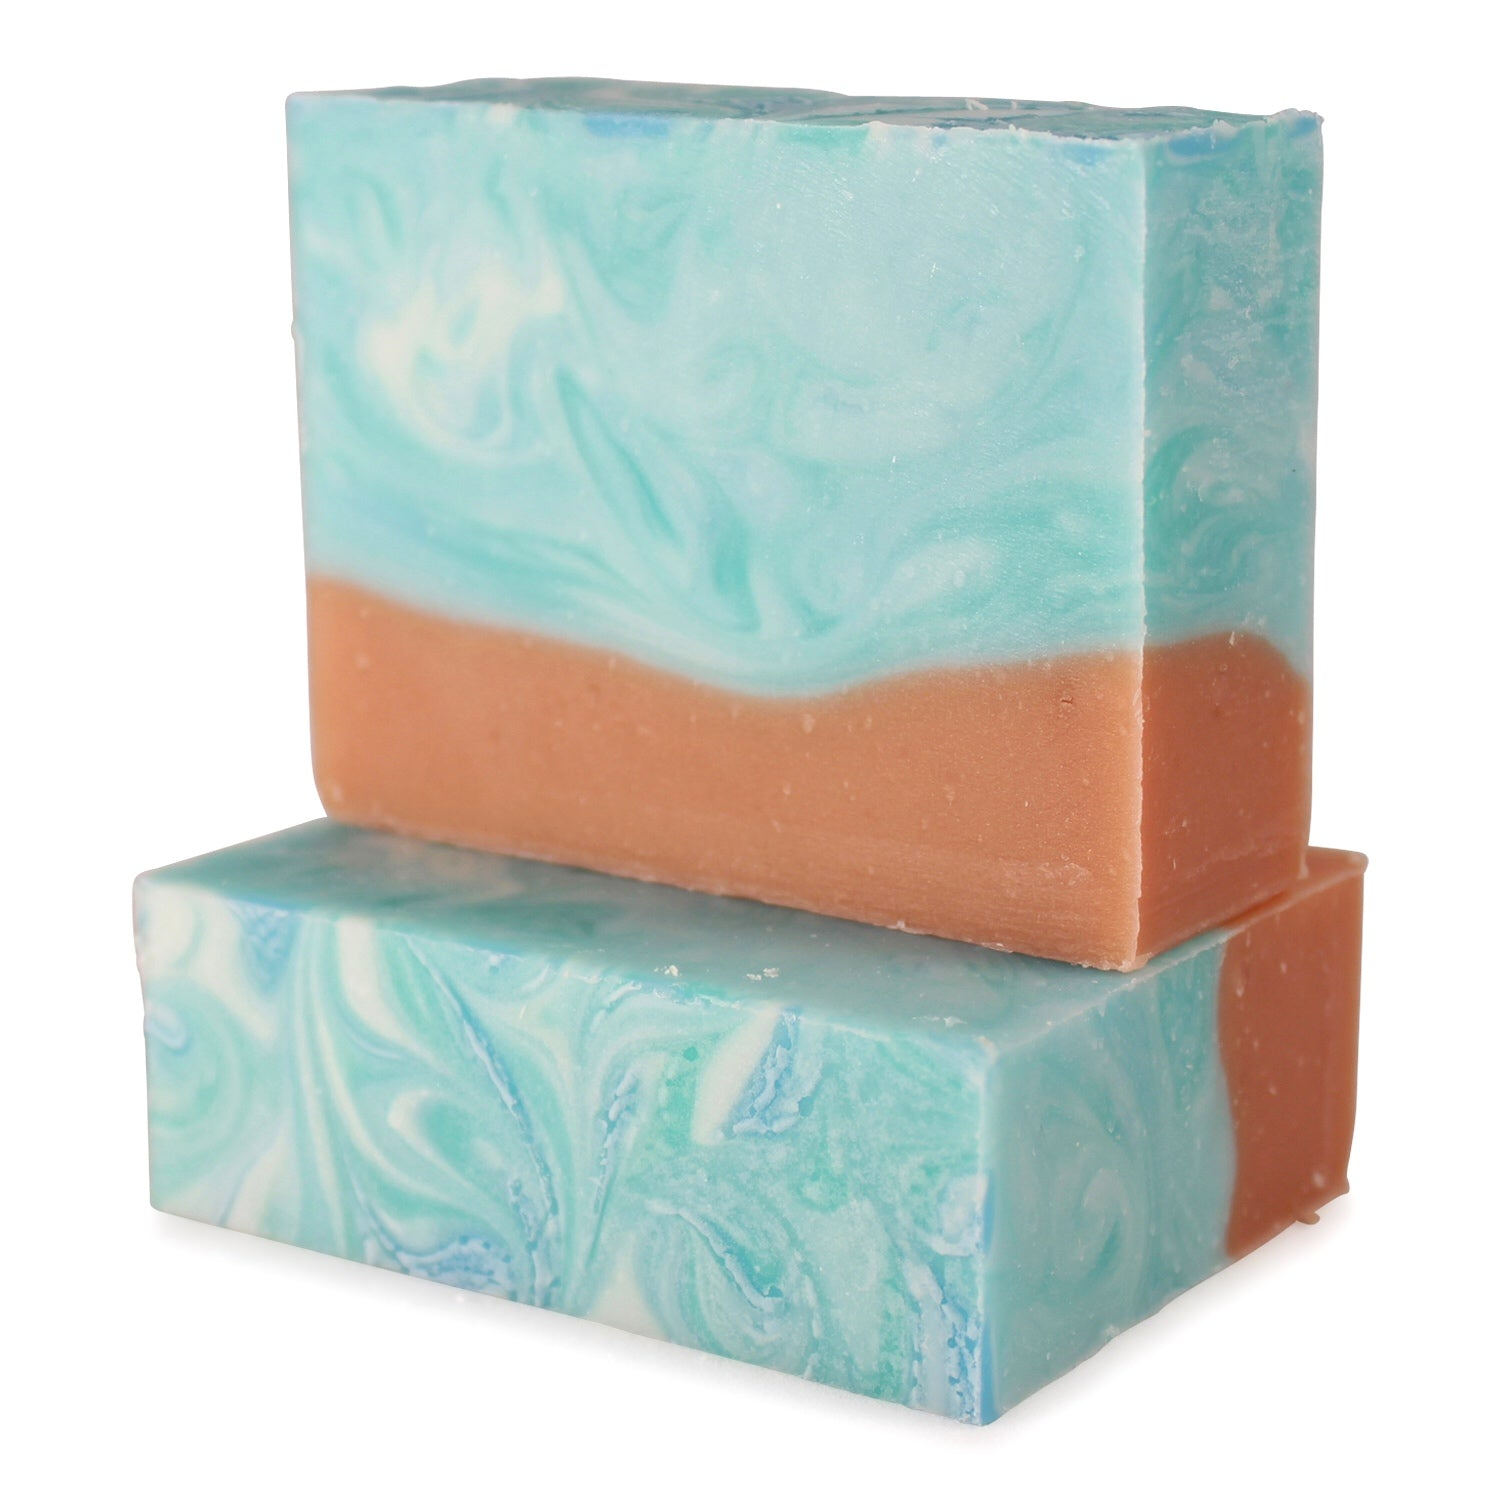 Seaside Soap | water lily, apple blossoms, sandalwood + bergamot